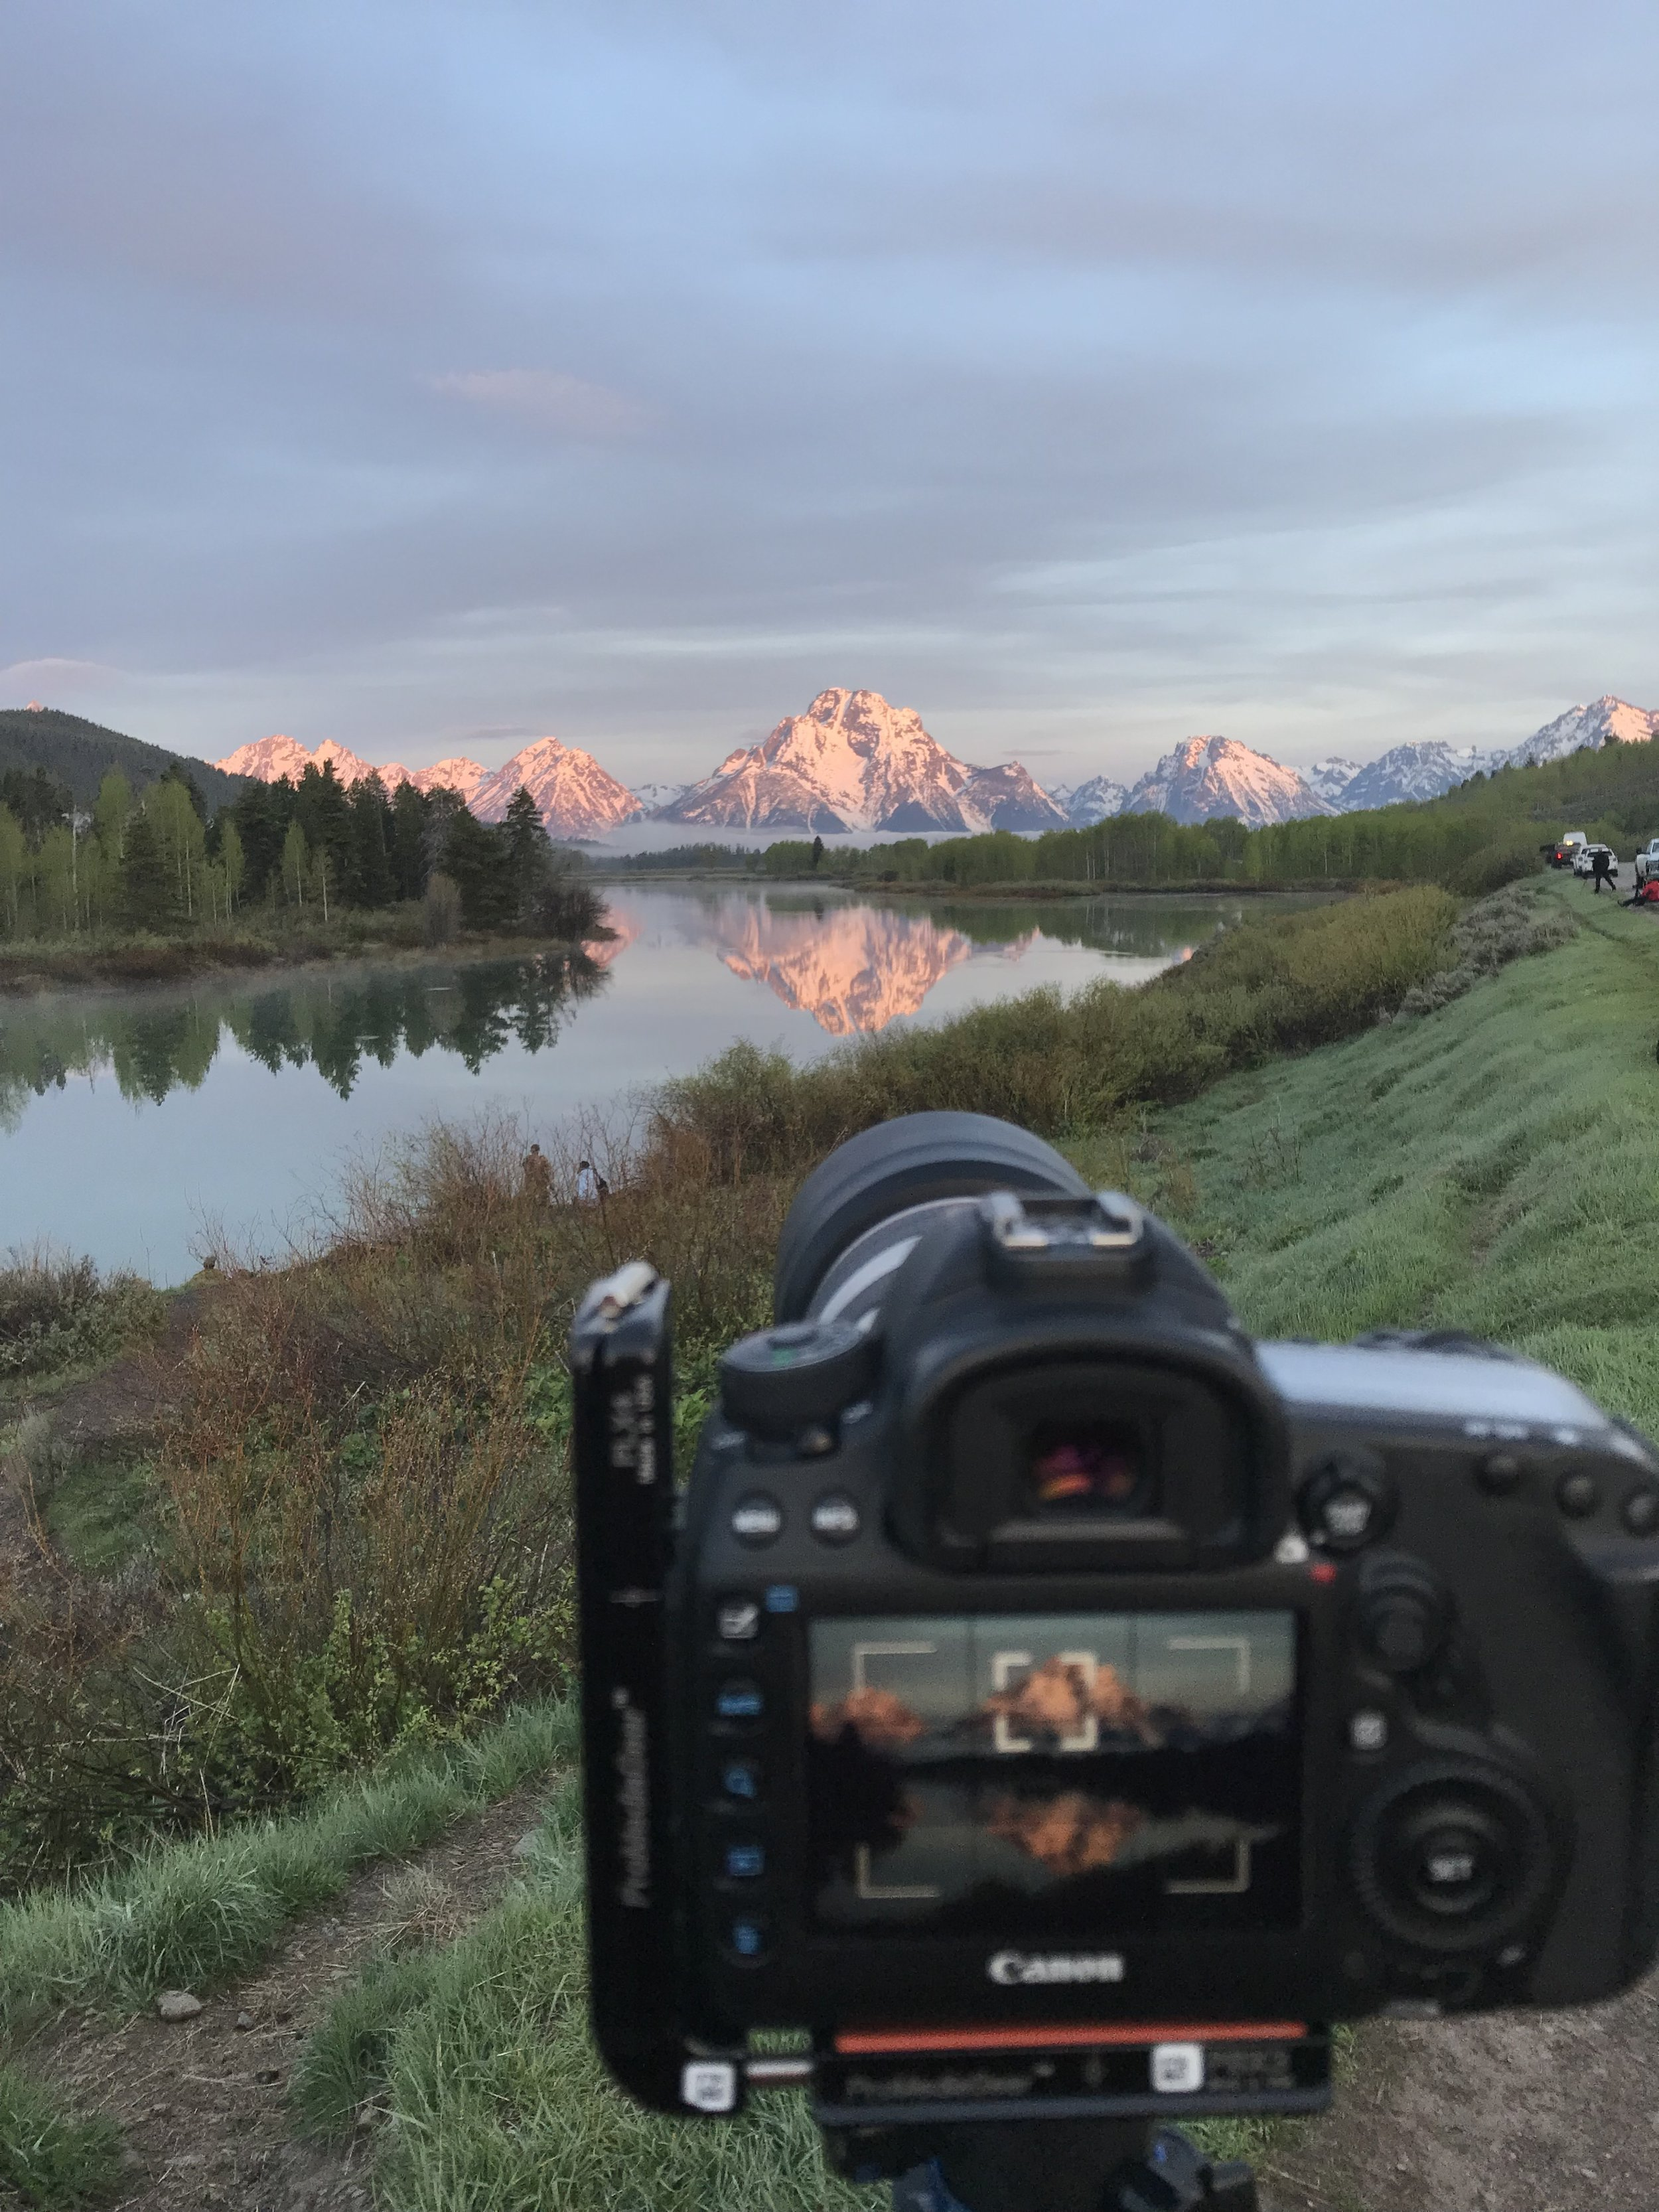 A behind the scene look at yesterday's sunrise.